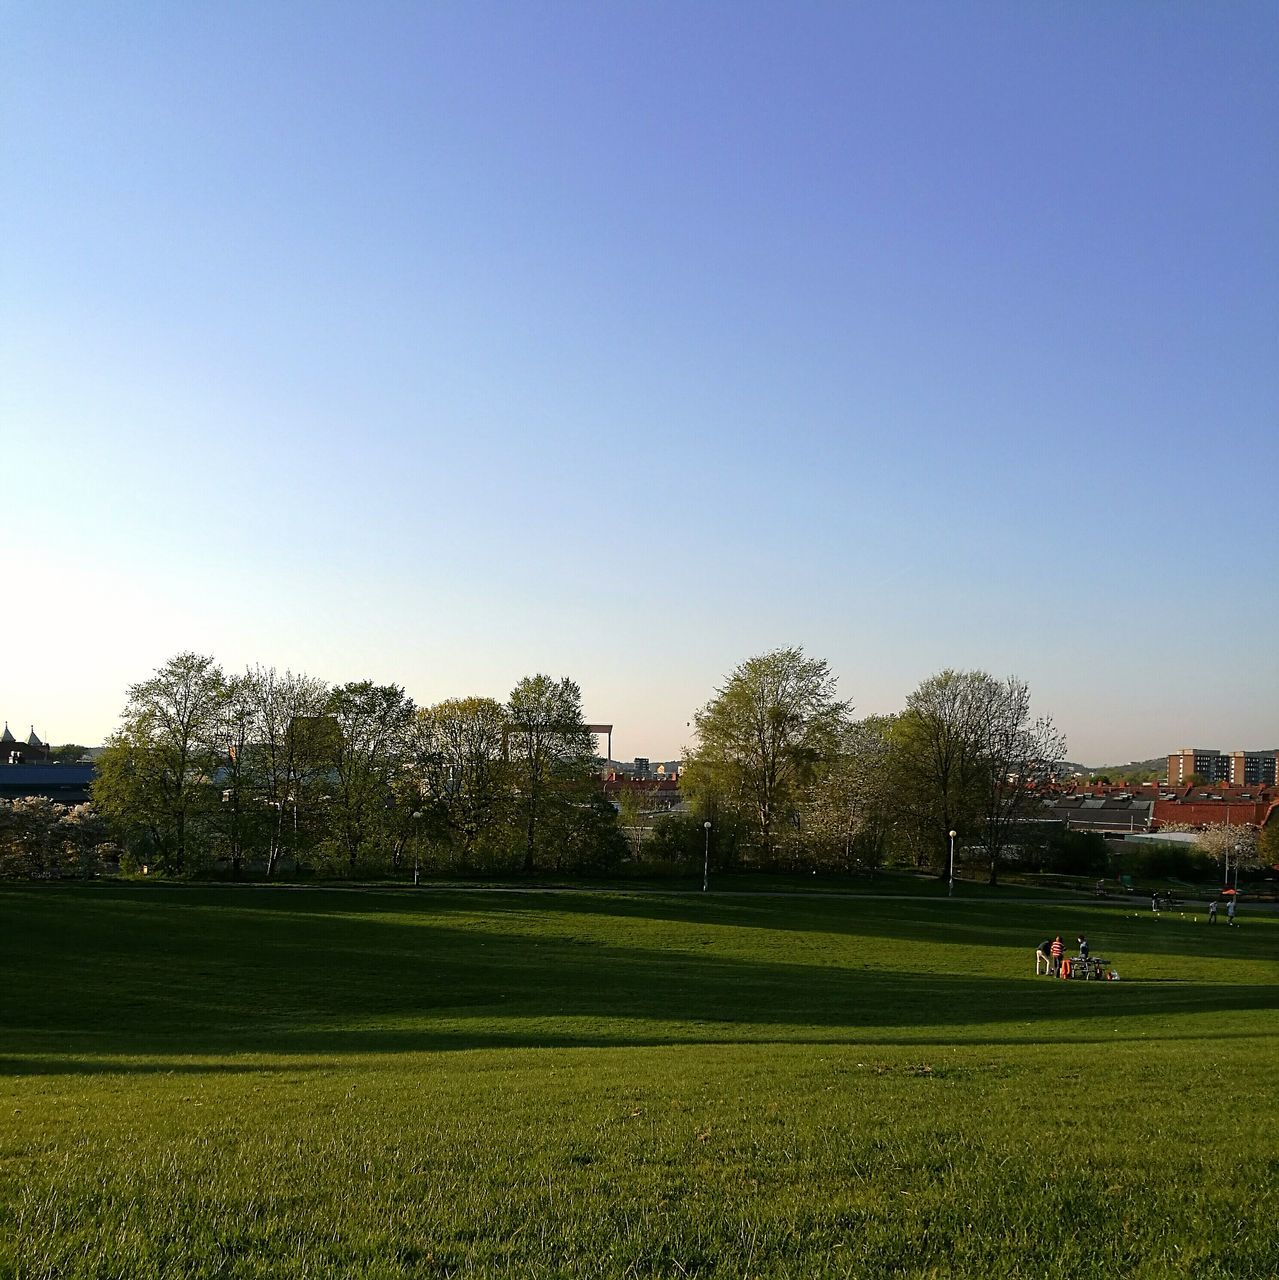 grass, clear sky, green color, nature, tree, field, real people, built structure, architecture, men, growth, outdoors, leisure activity, building exterior, lifestyles, beauty in nature, day, landscape, togetherness, sport, city, sky, people